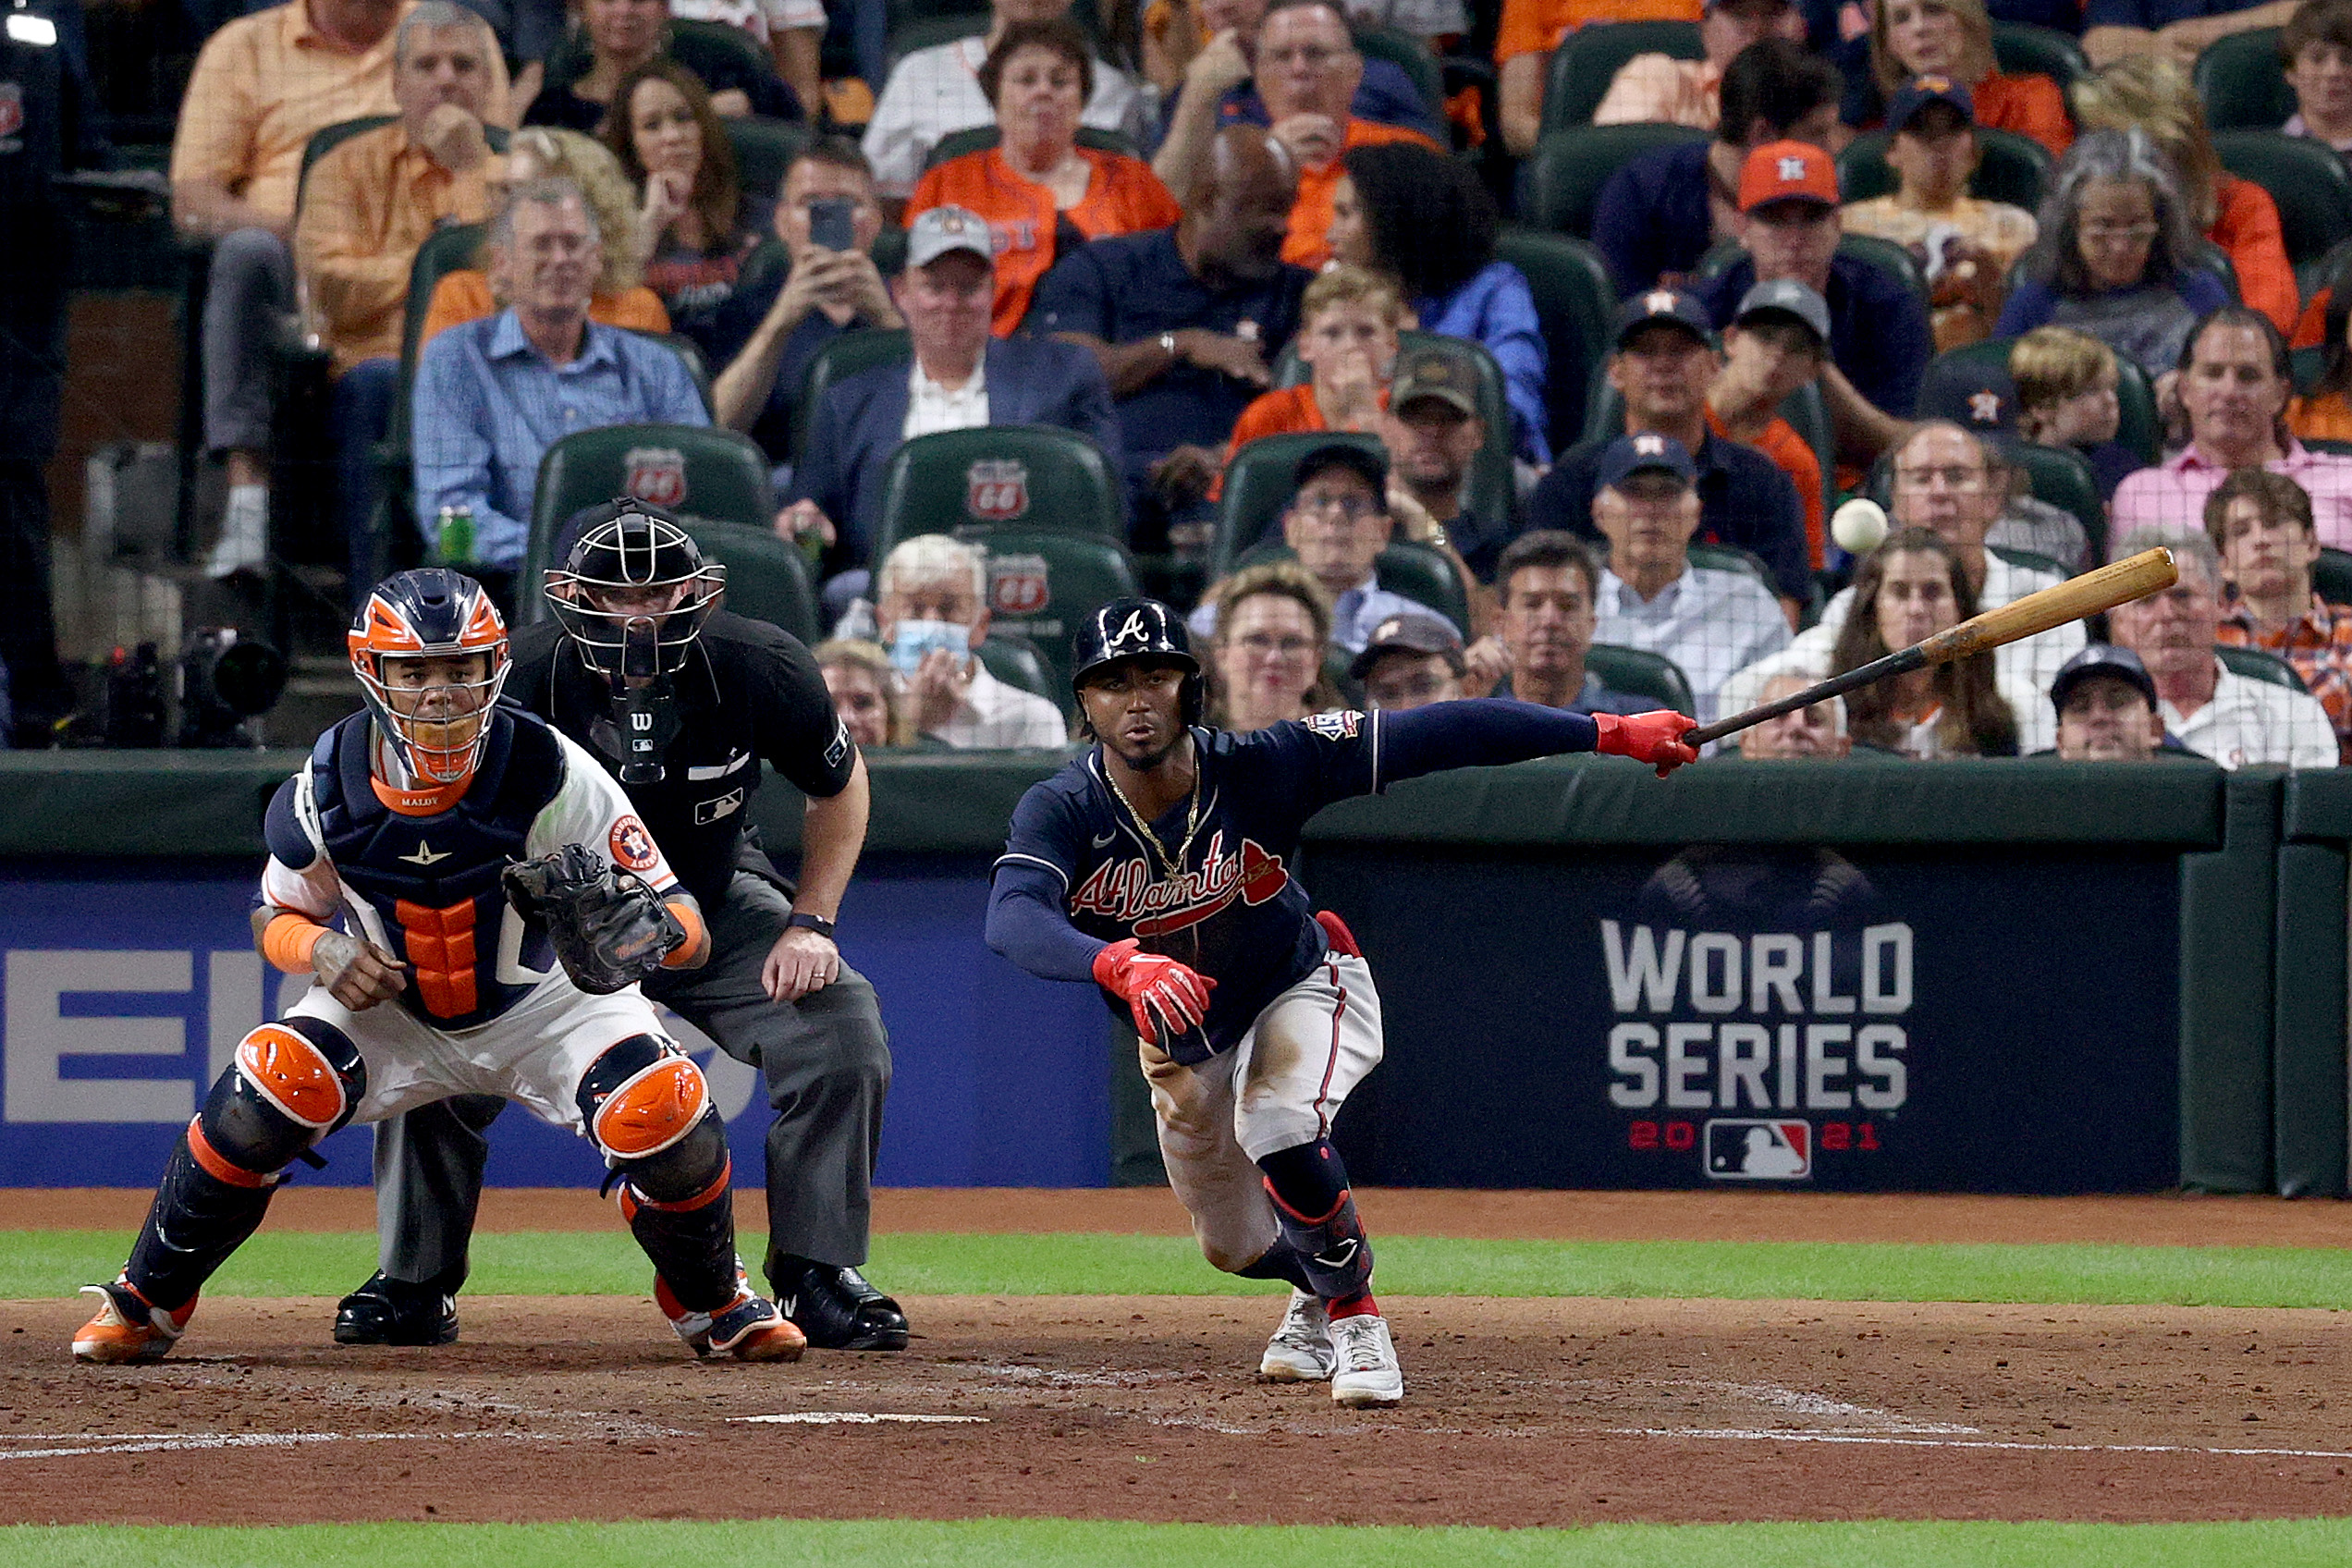 Ozzie Albies #1 of the Atlanta Braves hits a single against the Houston Astros during the second inning in Game One of the World Series at Minute Maid Park on October 26, 2021 in Houston, Texas.